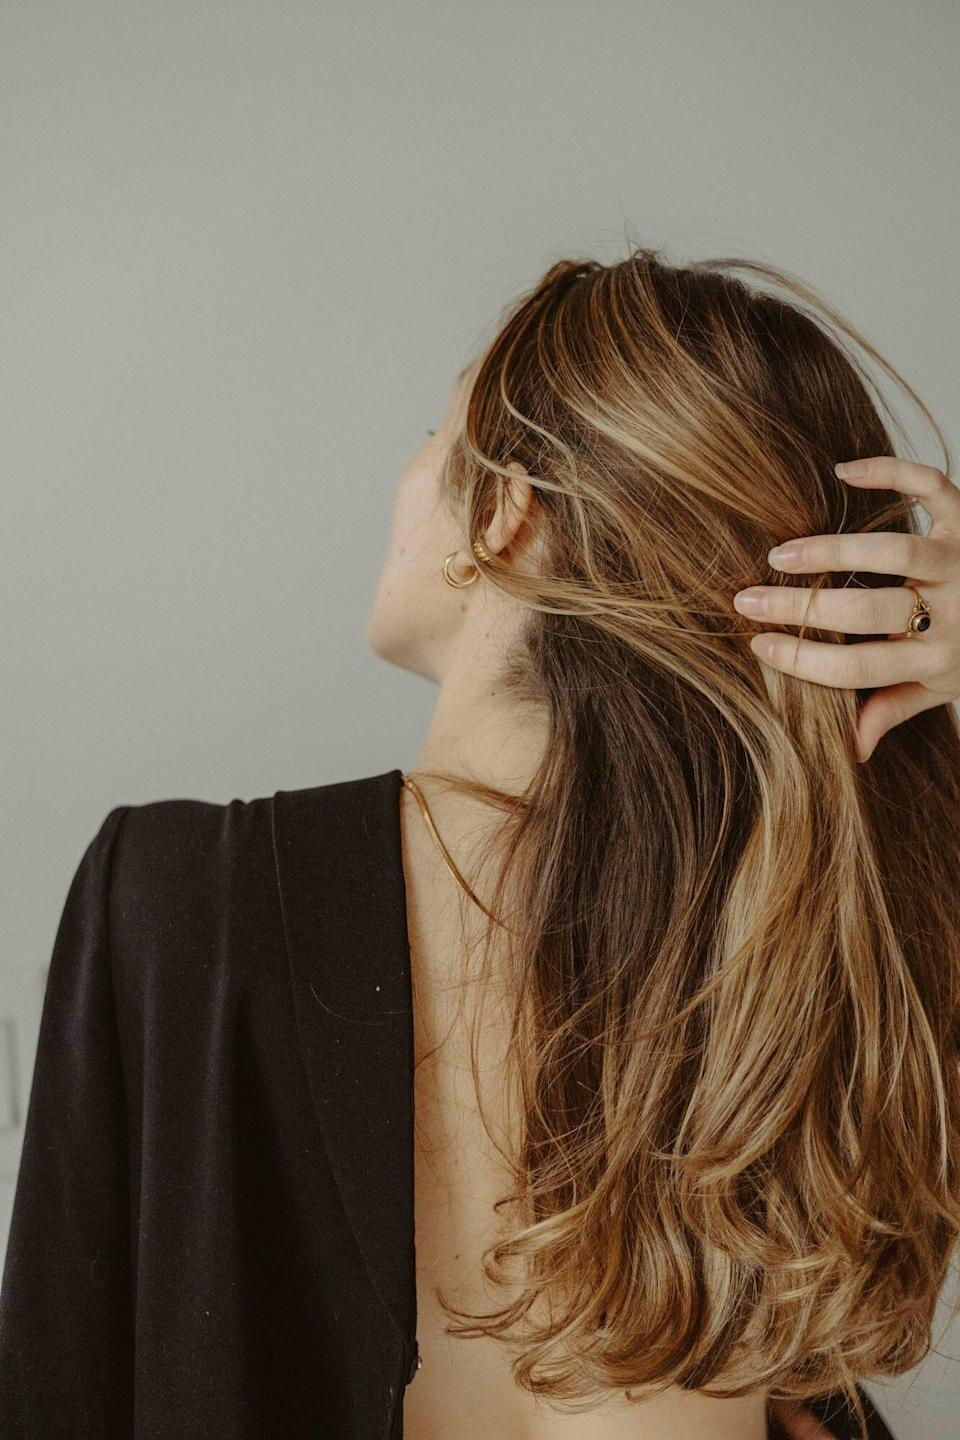 The 11 Best Hair Color Ideas For Blondes According To Celeb Colorists